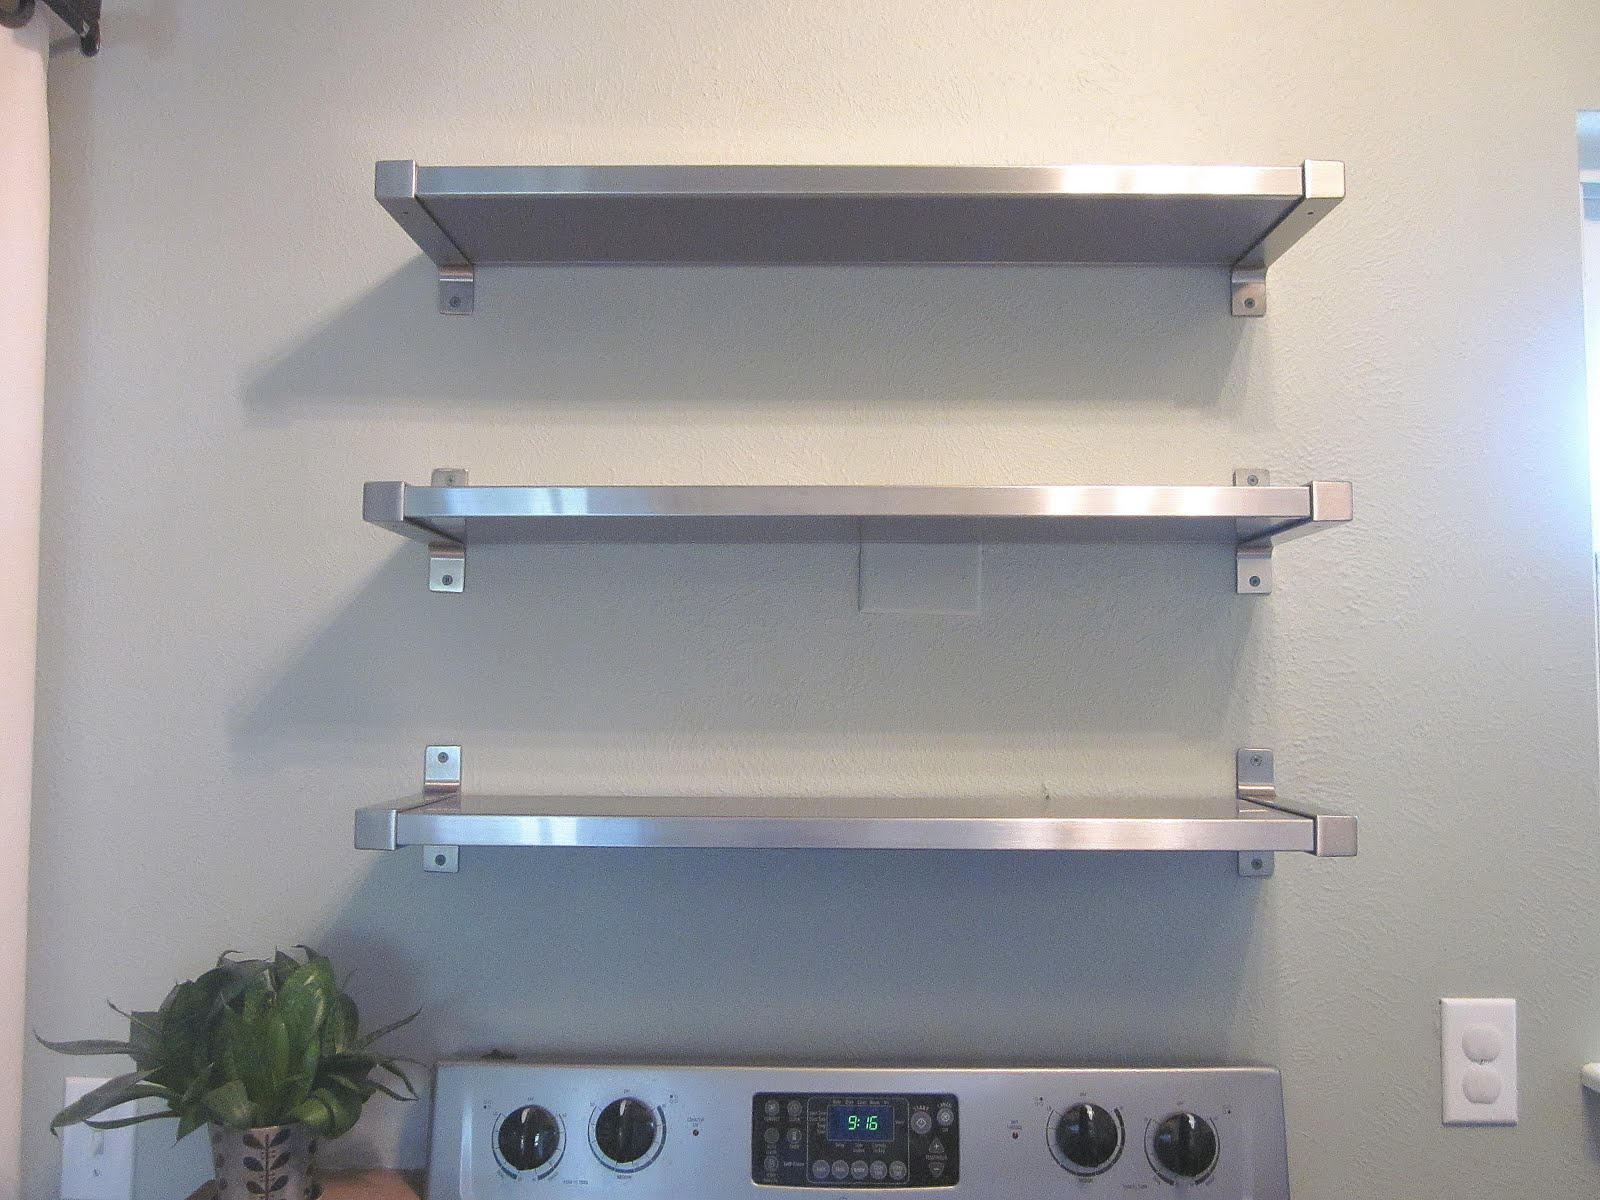 freckles ikea insanity kitchen shelves